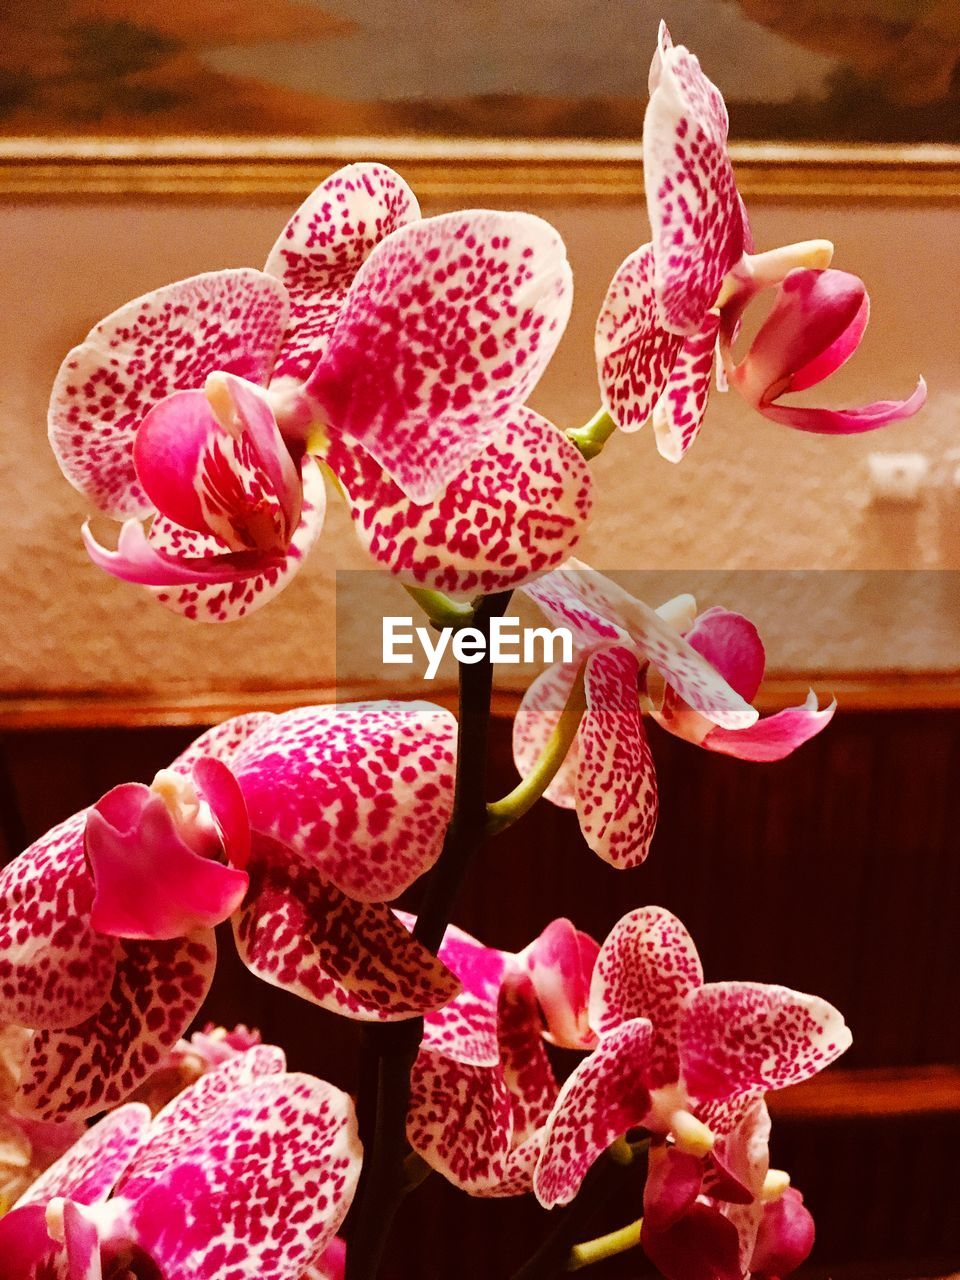 flower, flowering plant, freshness, vulnerability, beauty in nature, fragility, close-up, pink color, petal, plant, no people, flower head, inflorescence, indoors, growth, nature, orchid, focus on foreground, home interior, day